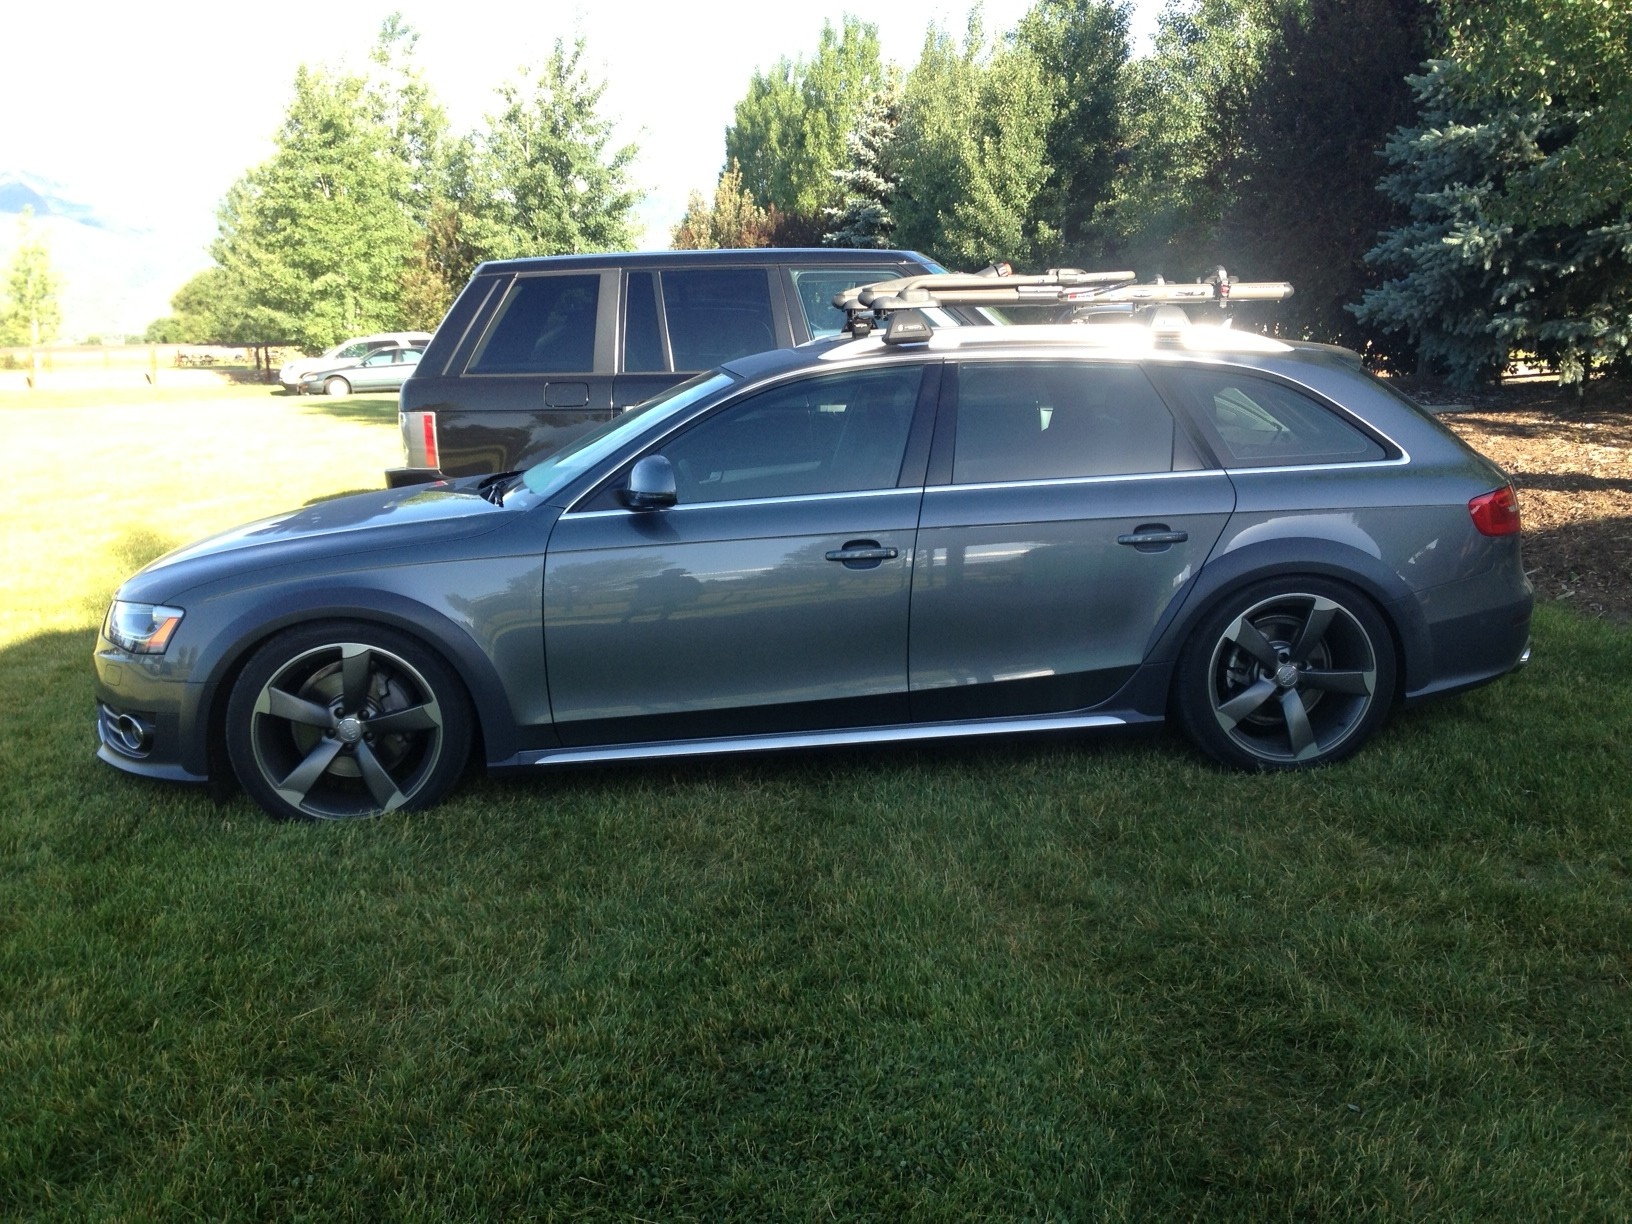 Quattroworld forums b8 a4 allroad 2009 present since i posted last ive added tint 50 front 35 the rest bike racks st coilovers and a bunch of vagcom mods overall really enjoying the car more sciox Gallery